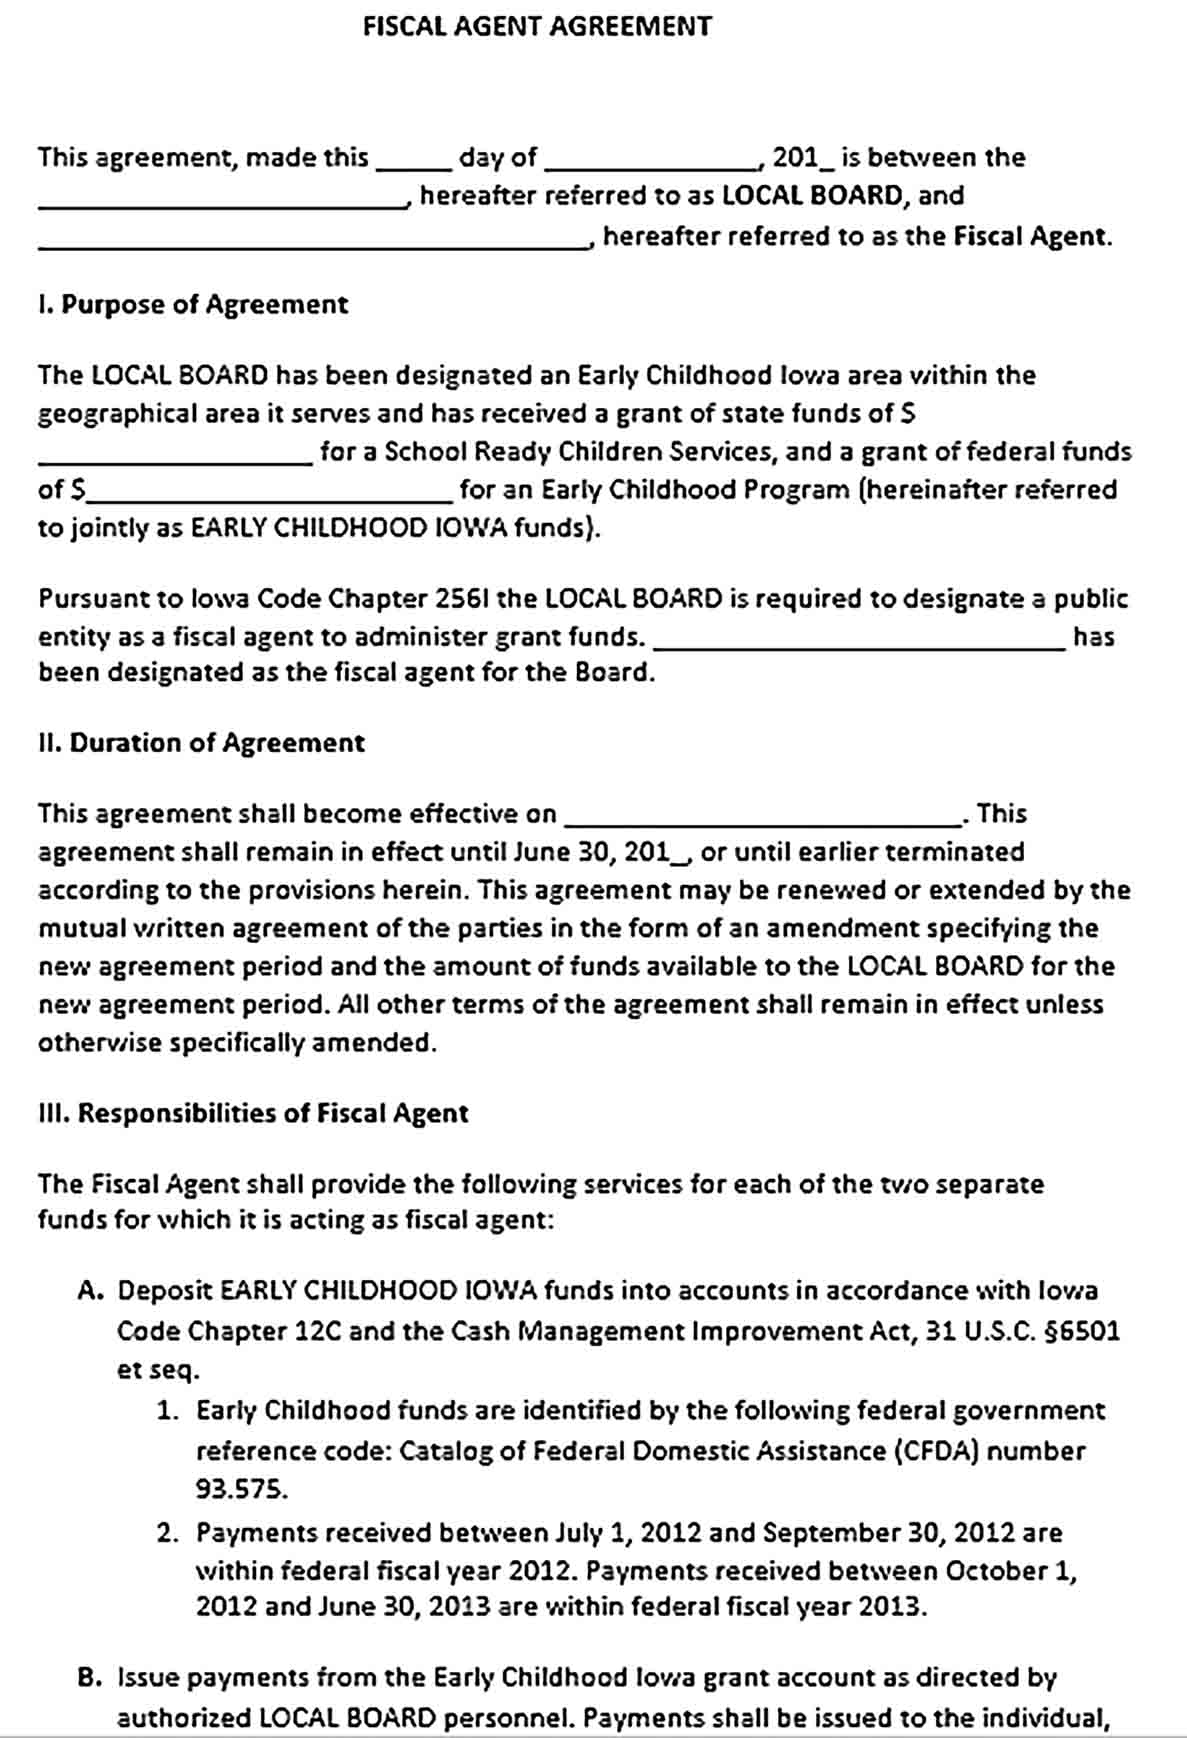 Sample Fiscal Agent Agreement